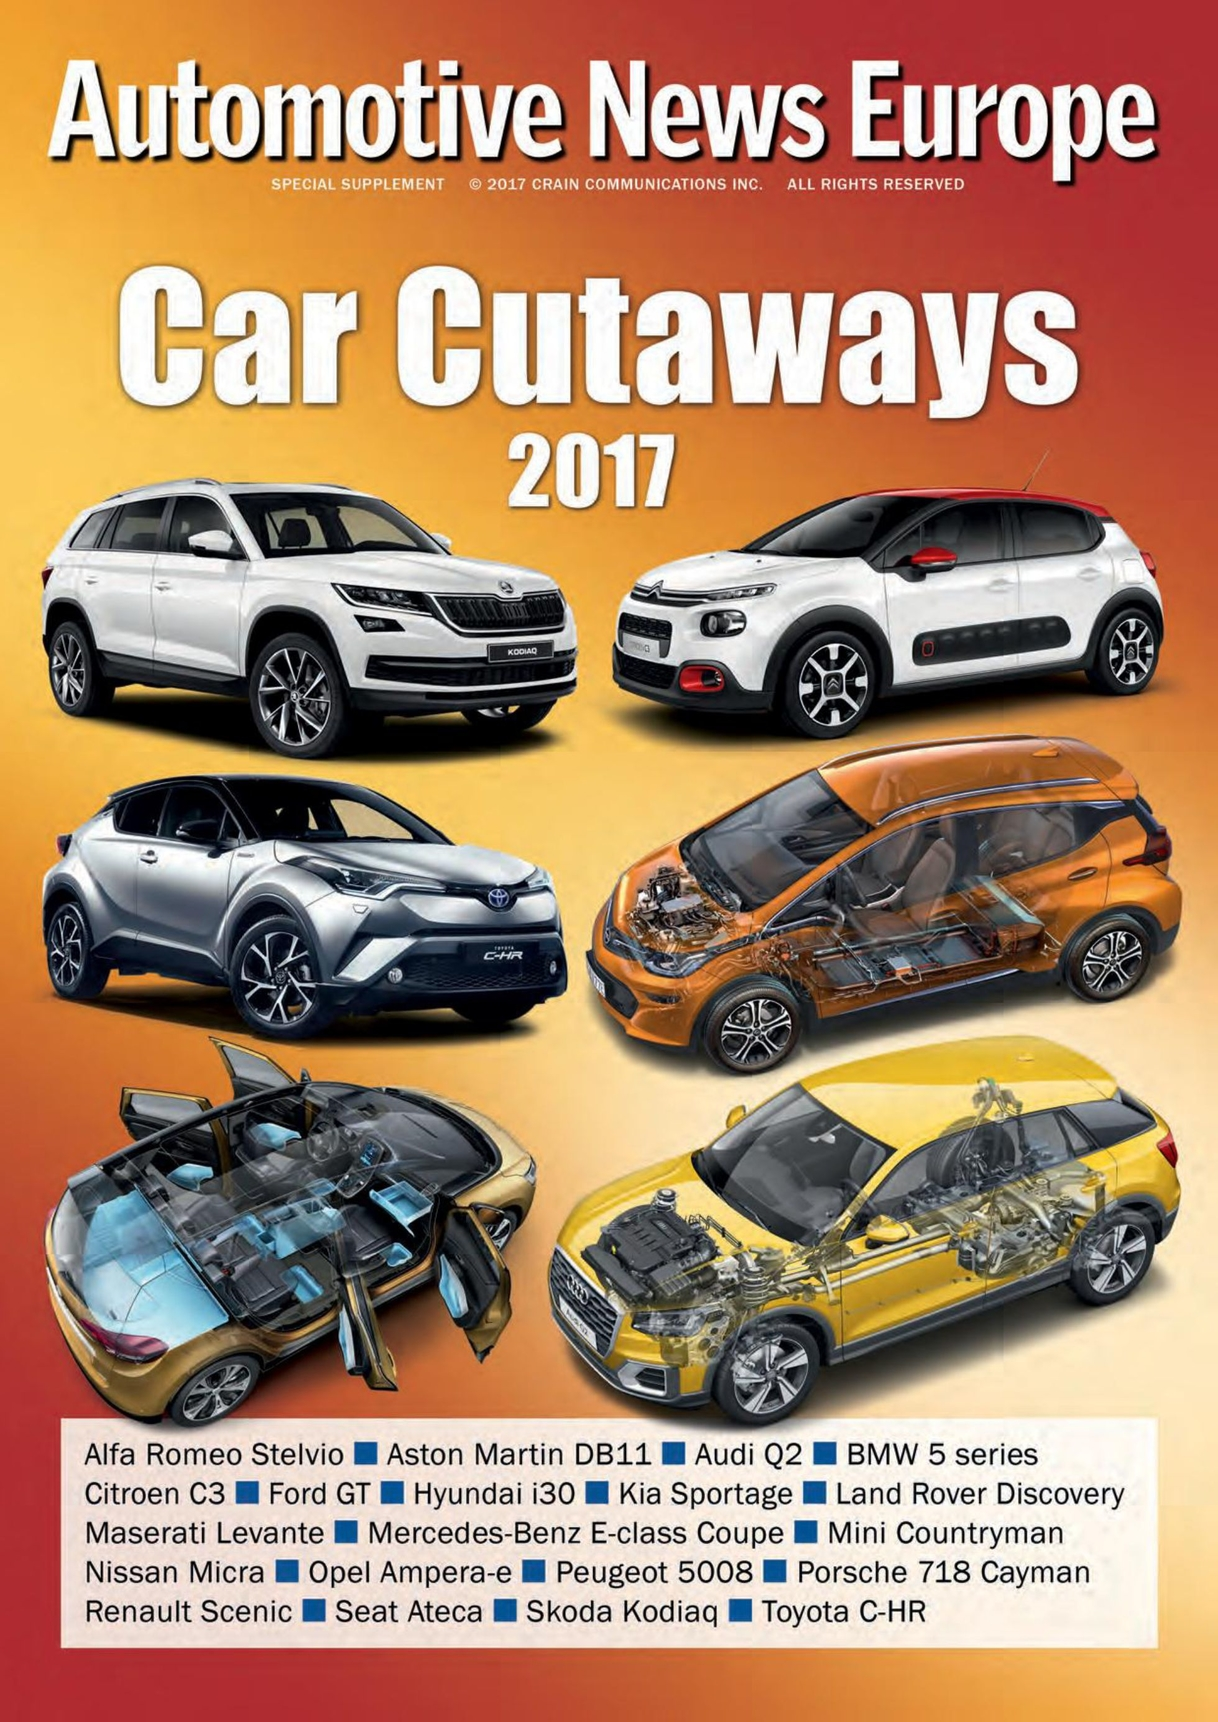 Automotive News Europe Car Cutaways Supplement